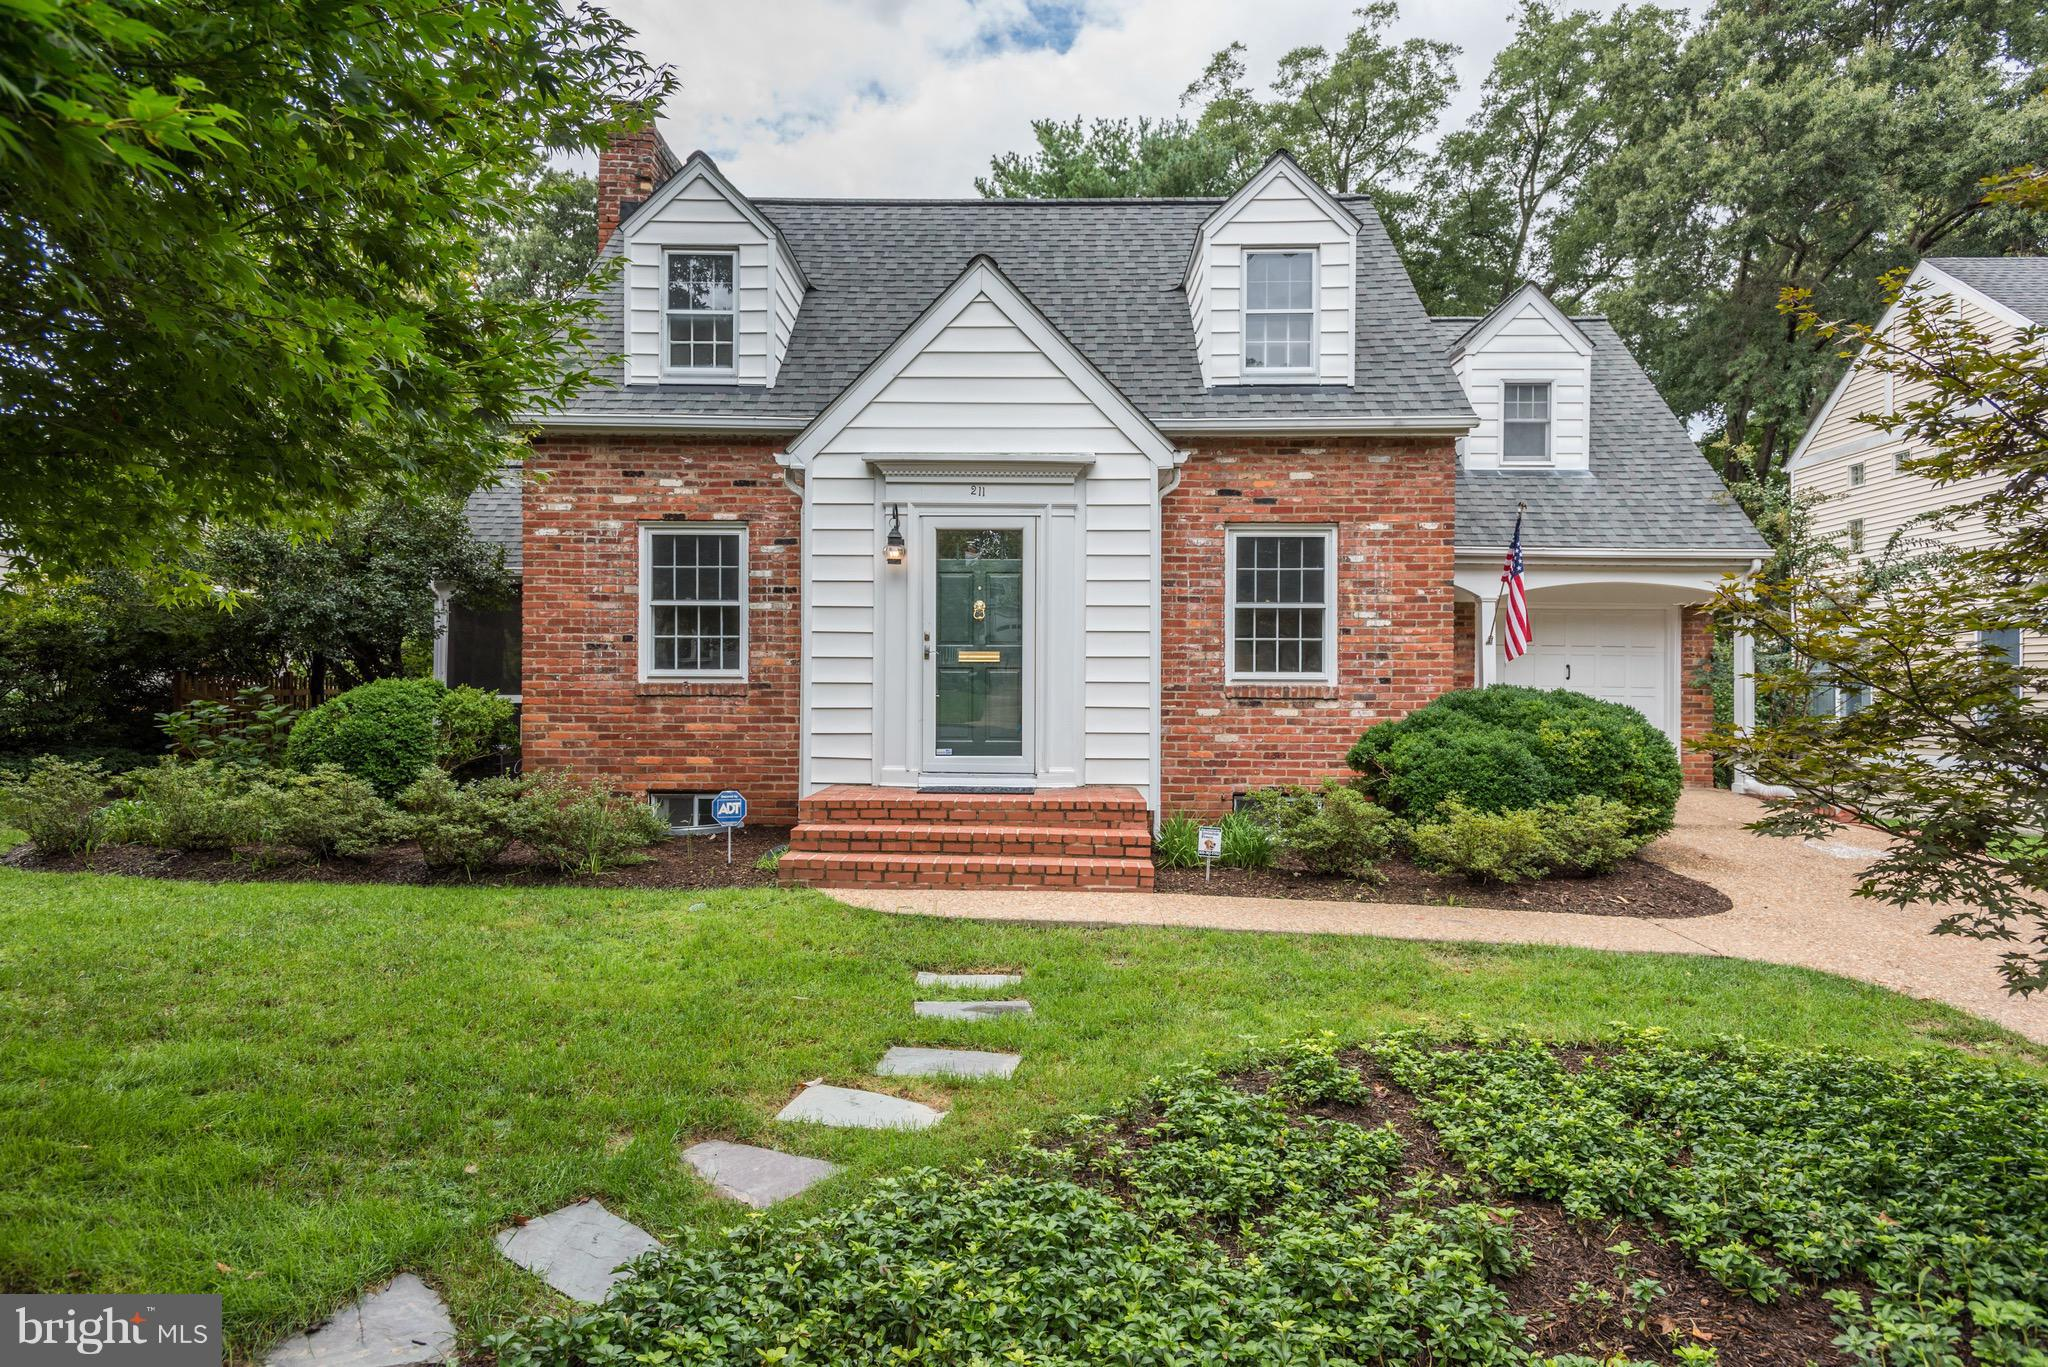 4 BR, 3 BA Cape Cod on amazing lot in the heart of FC City's Broadmont!1/2 mile from EFC Metro+easy access to I-66!Formal LR w FP, formal DR, updated kitchen & family room overlooking a beautifully landscaped fully-fenced back yard.Amazing screened porch w wood floors + beadboard ceiling.4 BR + 2 BA on upper level with LL rec room,full bath+laundry+storage.Falls Church City Schools!